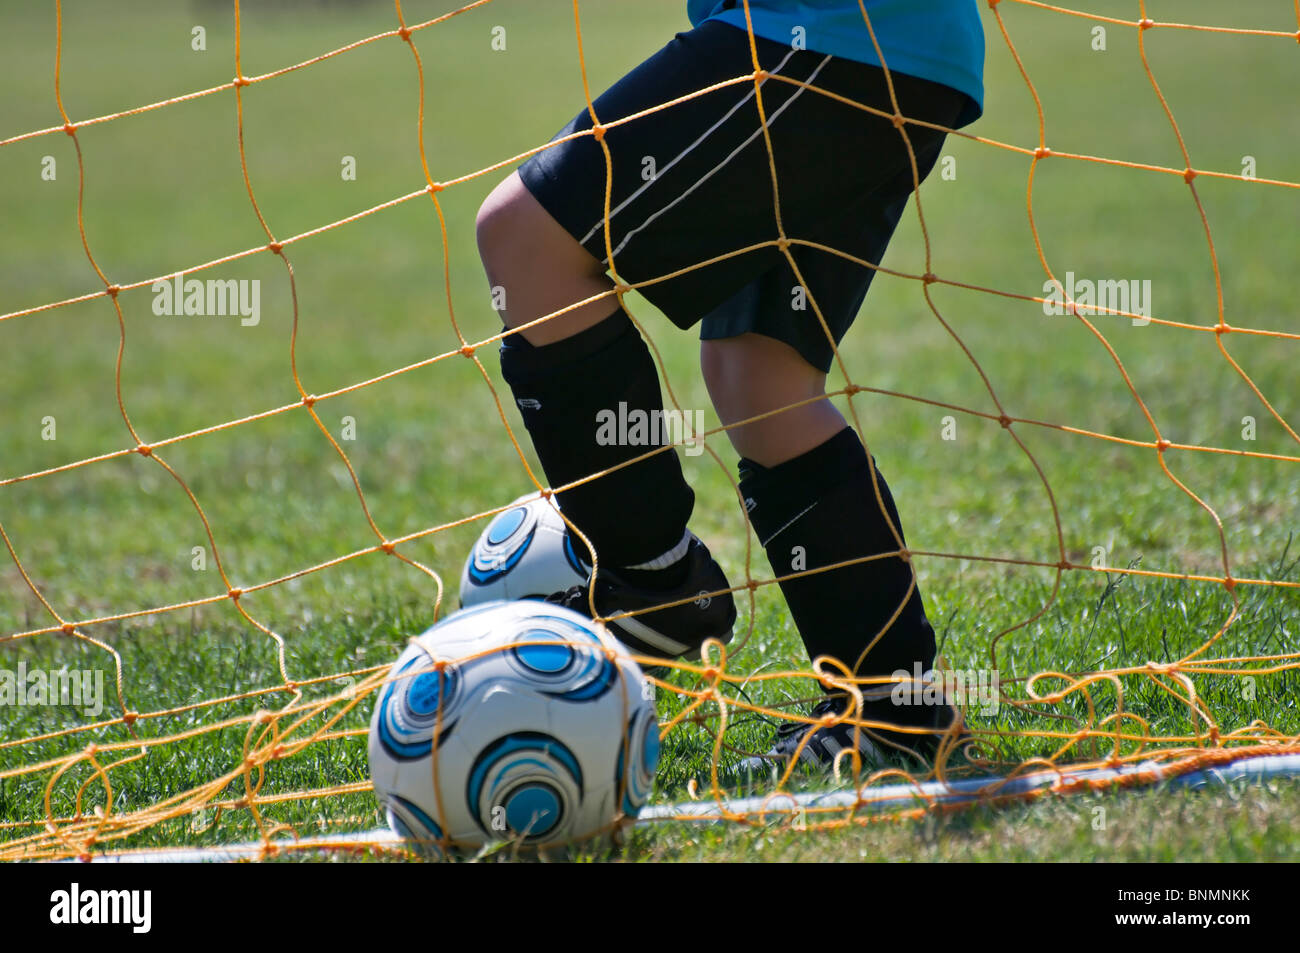 A child at soccer camp retrieves the ball out from under the net during practice. - Stock Image